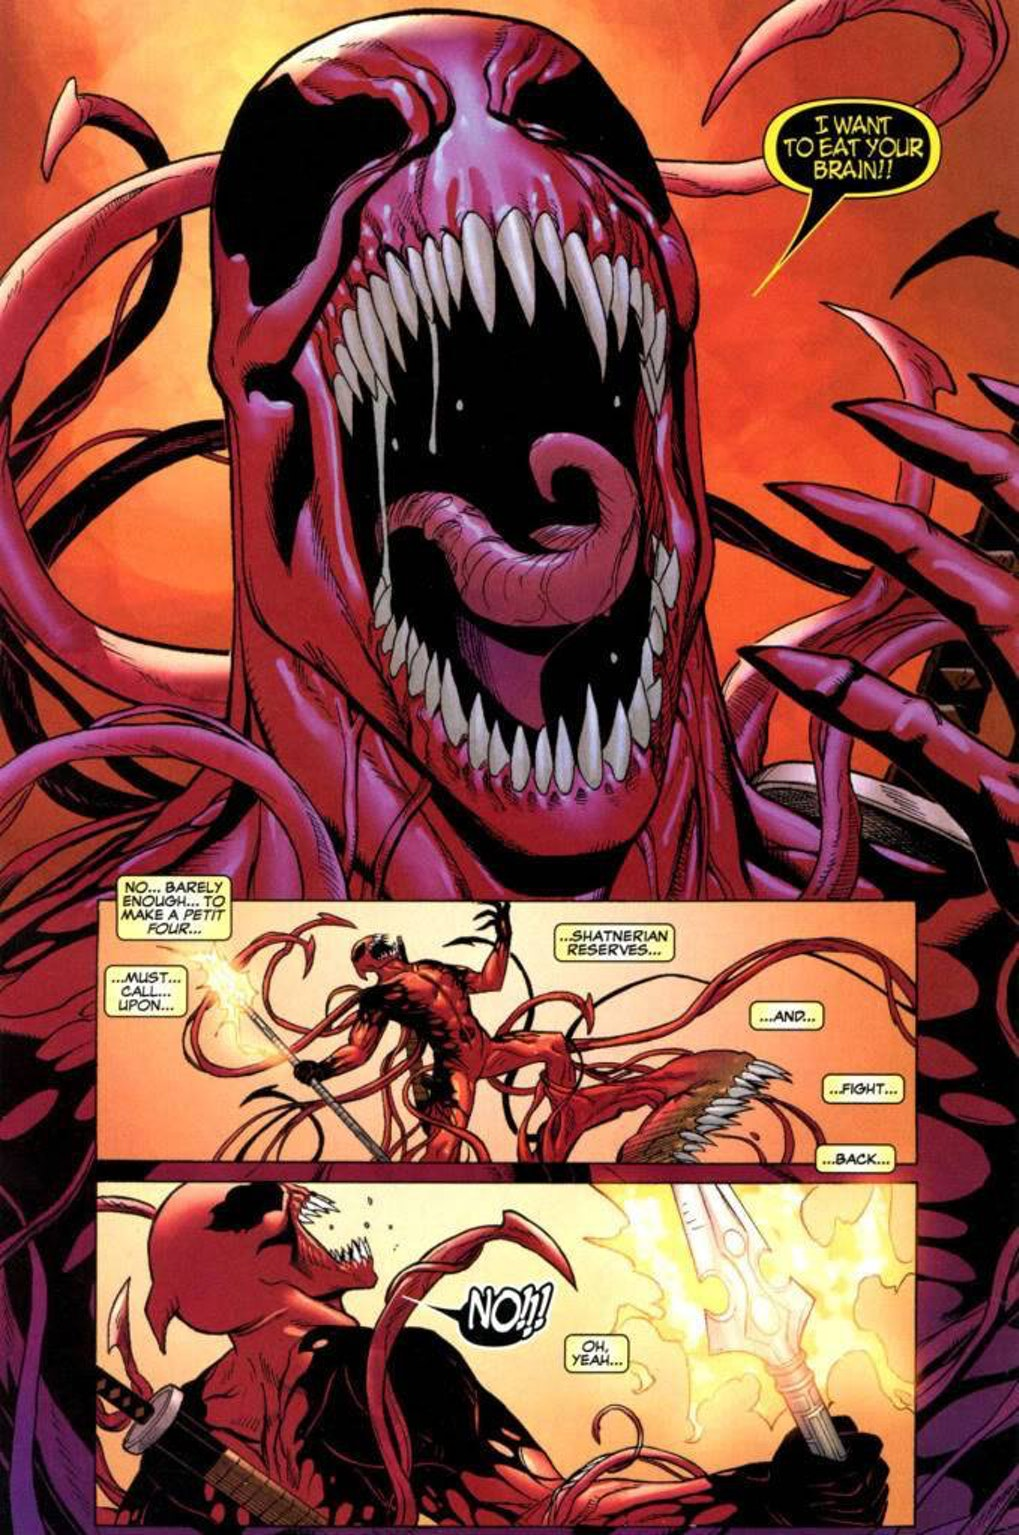 A 2011 one-shot comic previously explored the alien symbiote that made Venom possessing Deadpool.